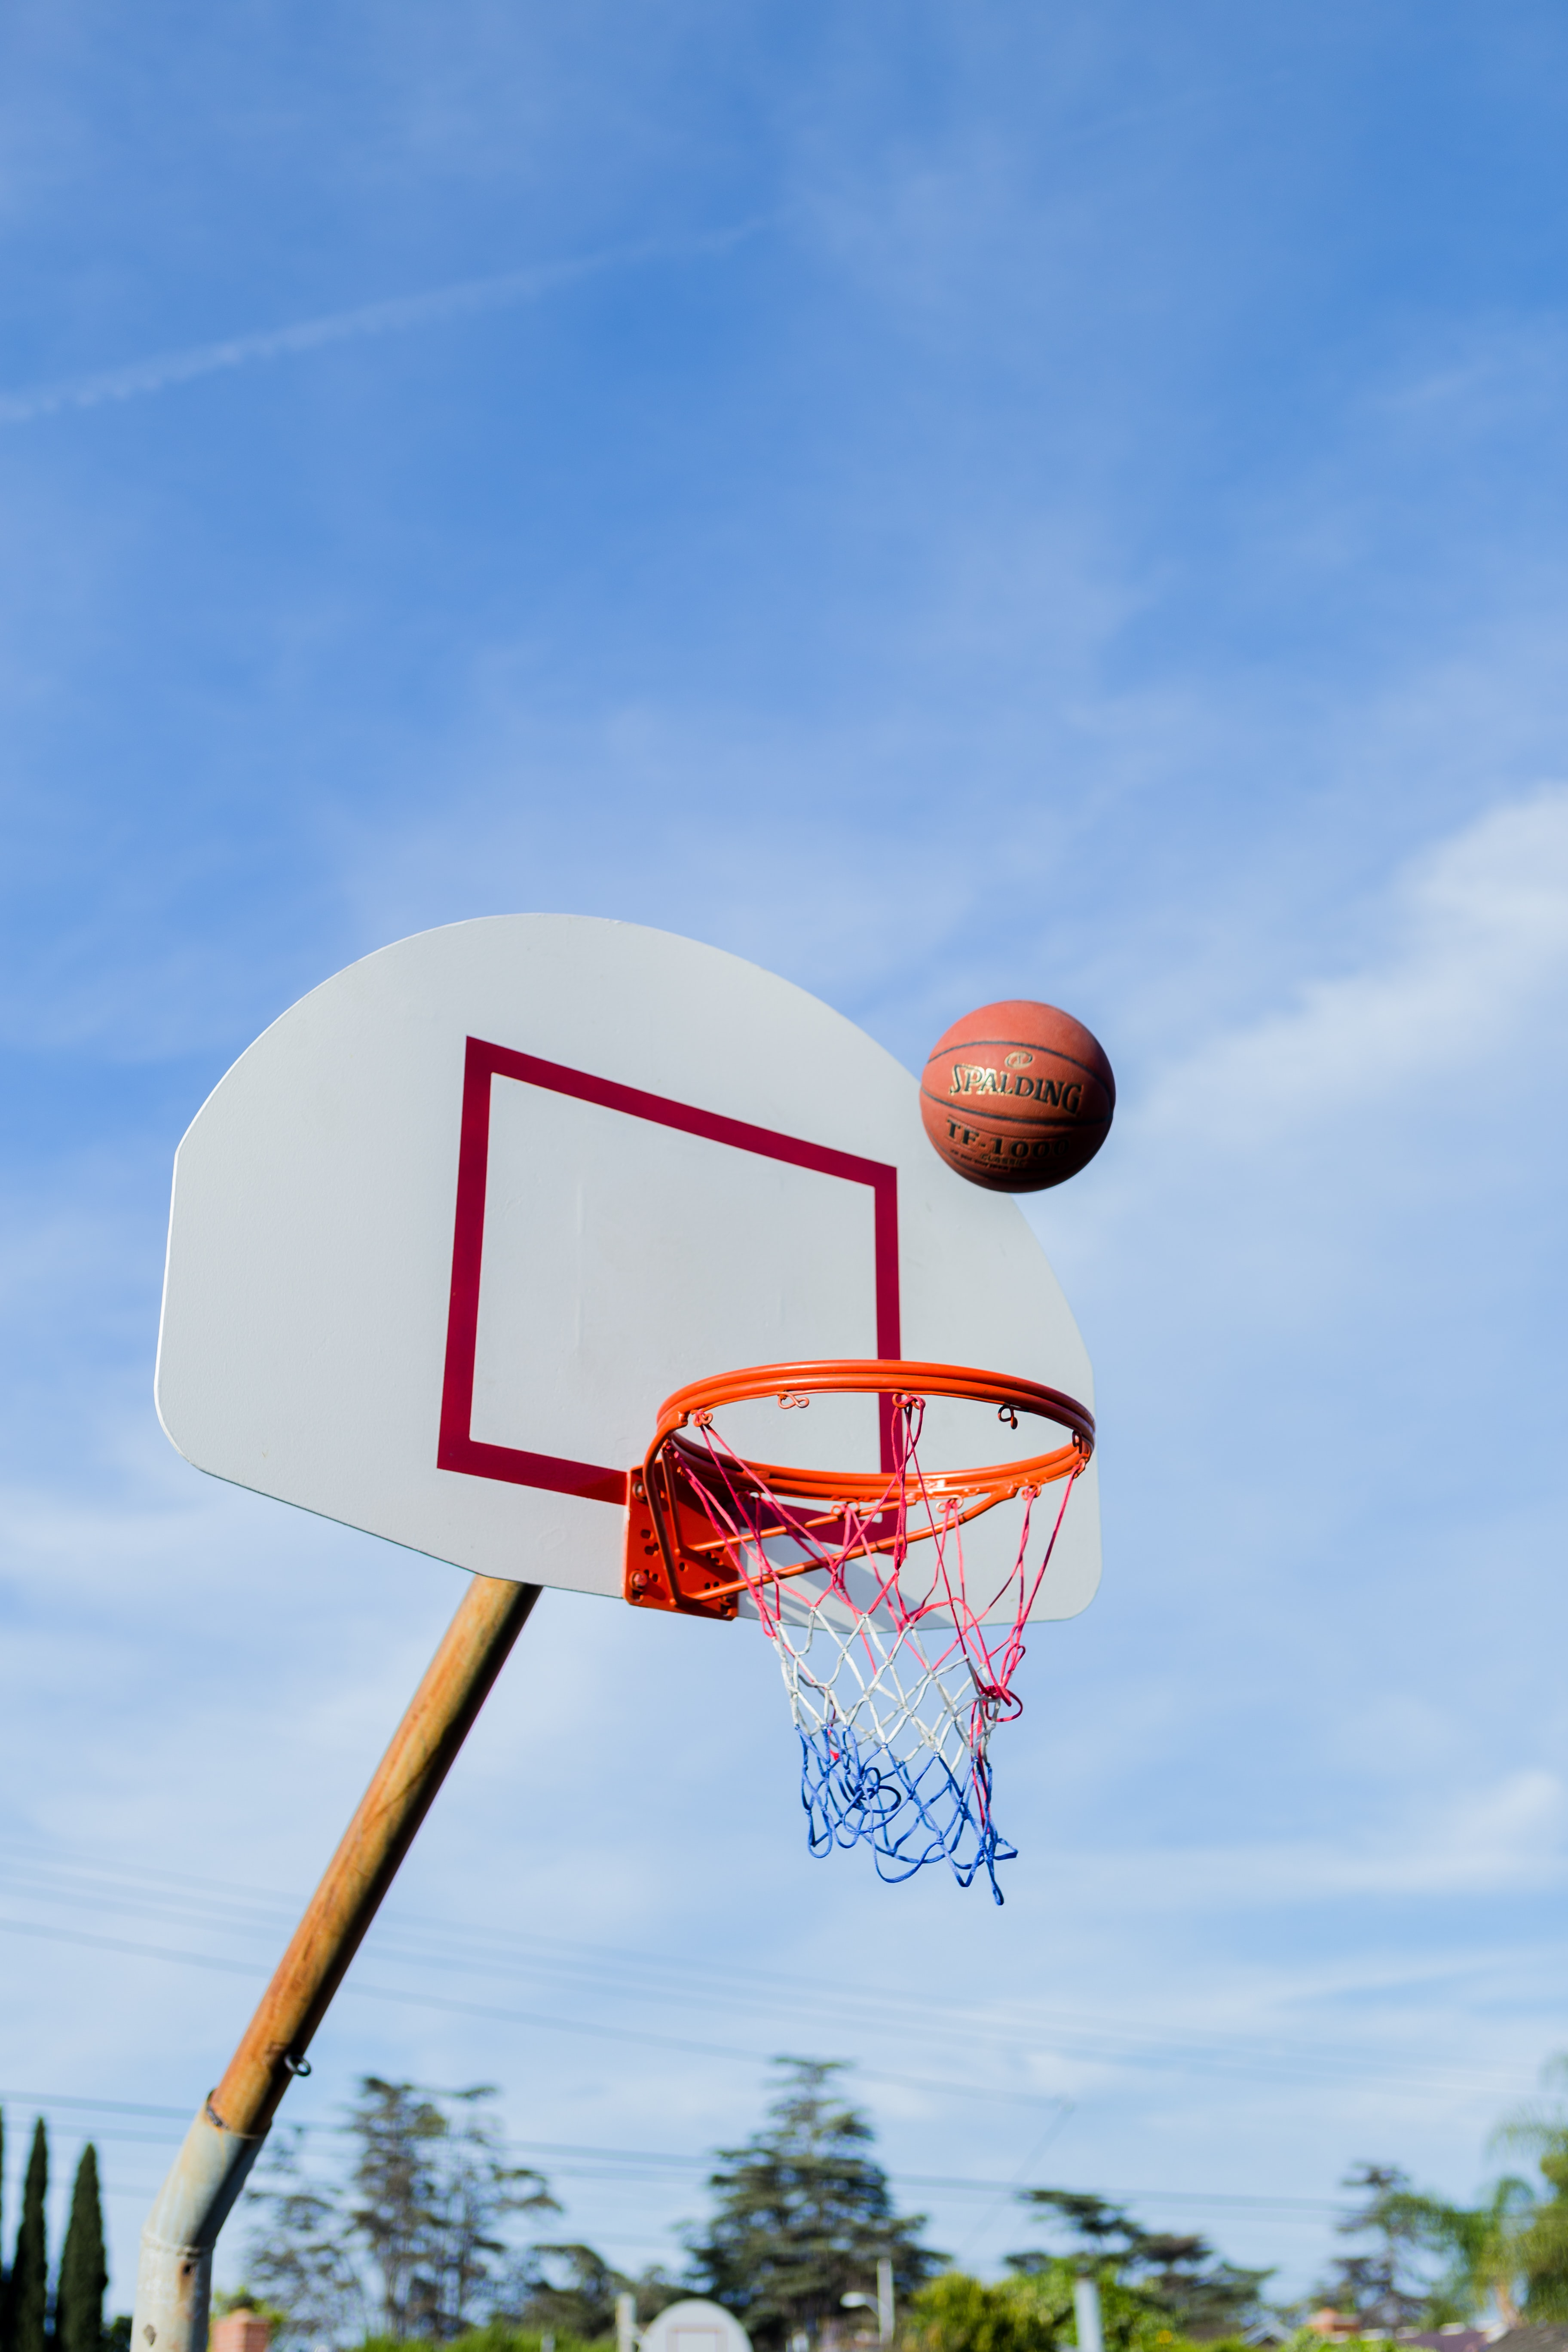 A basketball about to enter a bball net in an outdoor court.